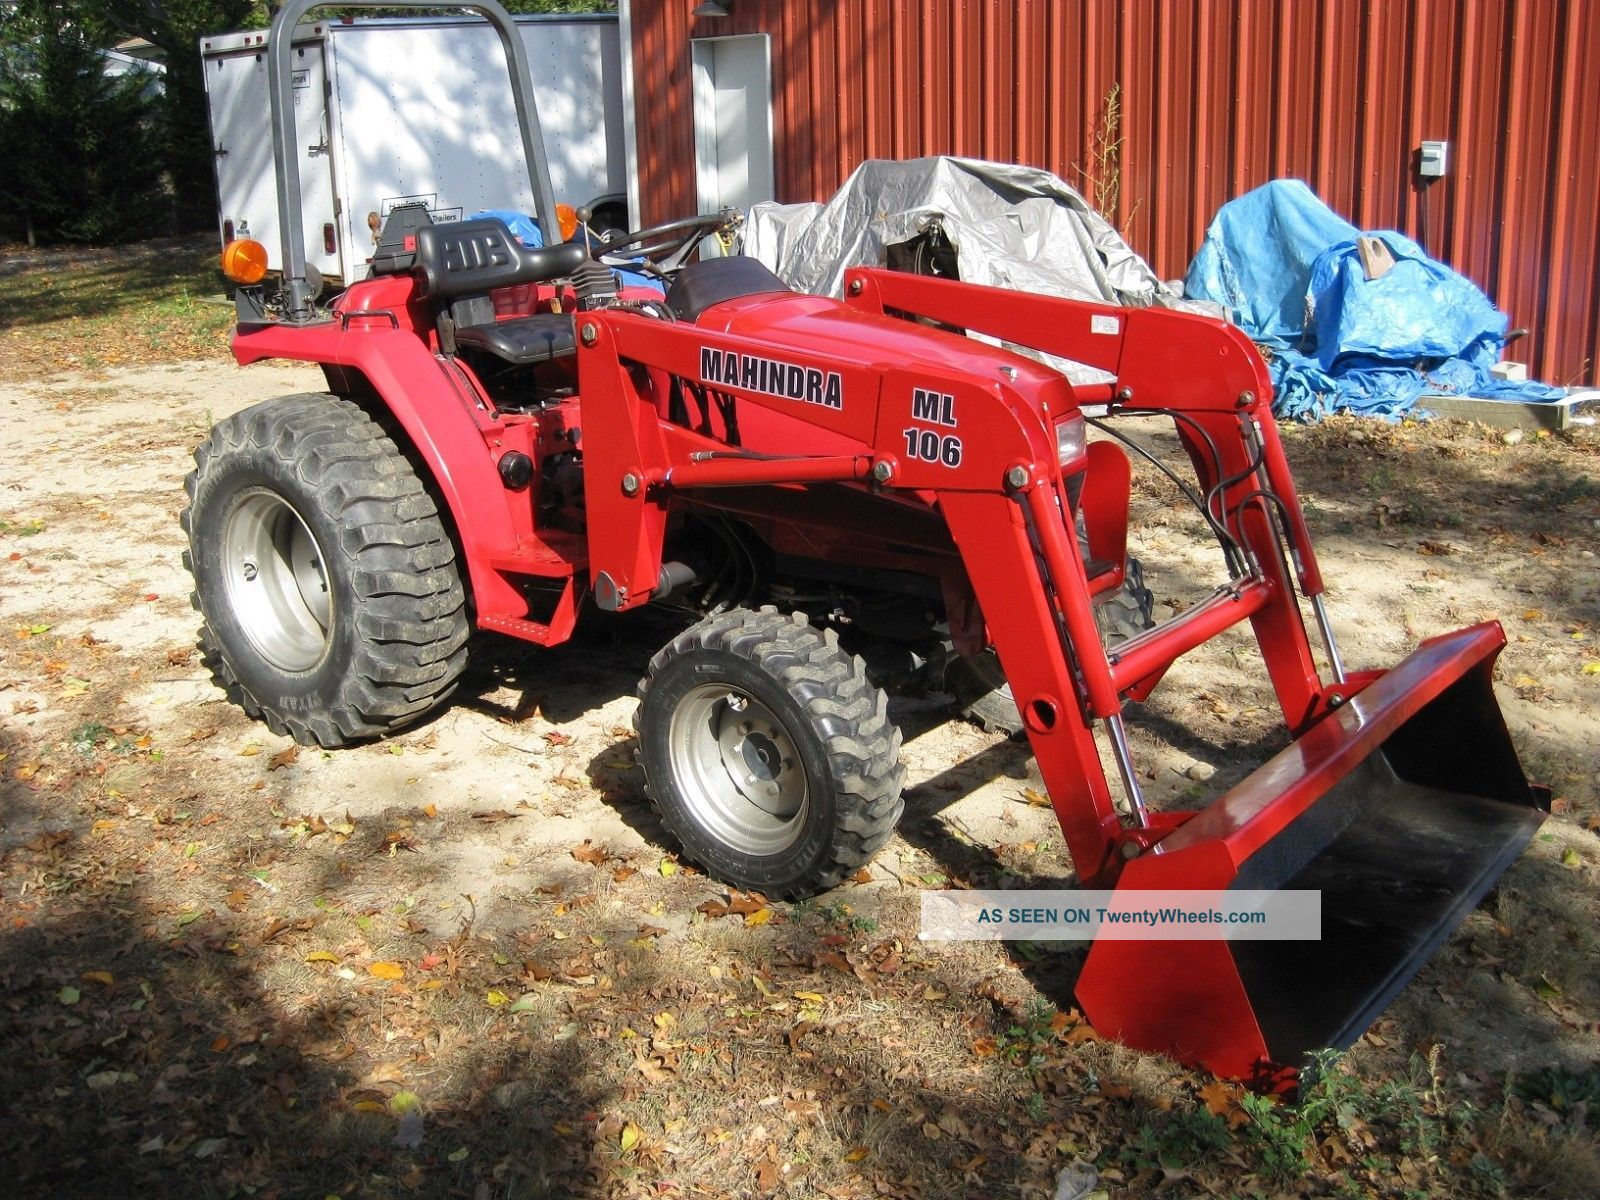 Mahindra Tractor Rims : Mahindra diesel wheel drive tractor with front end